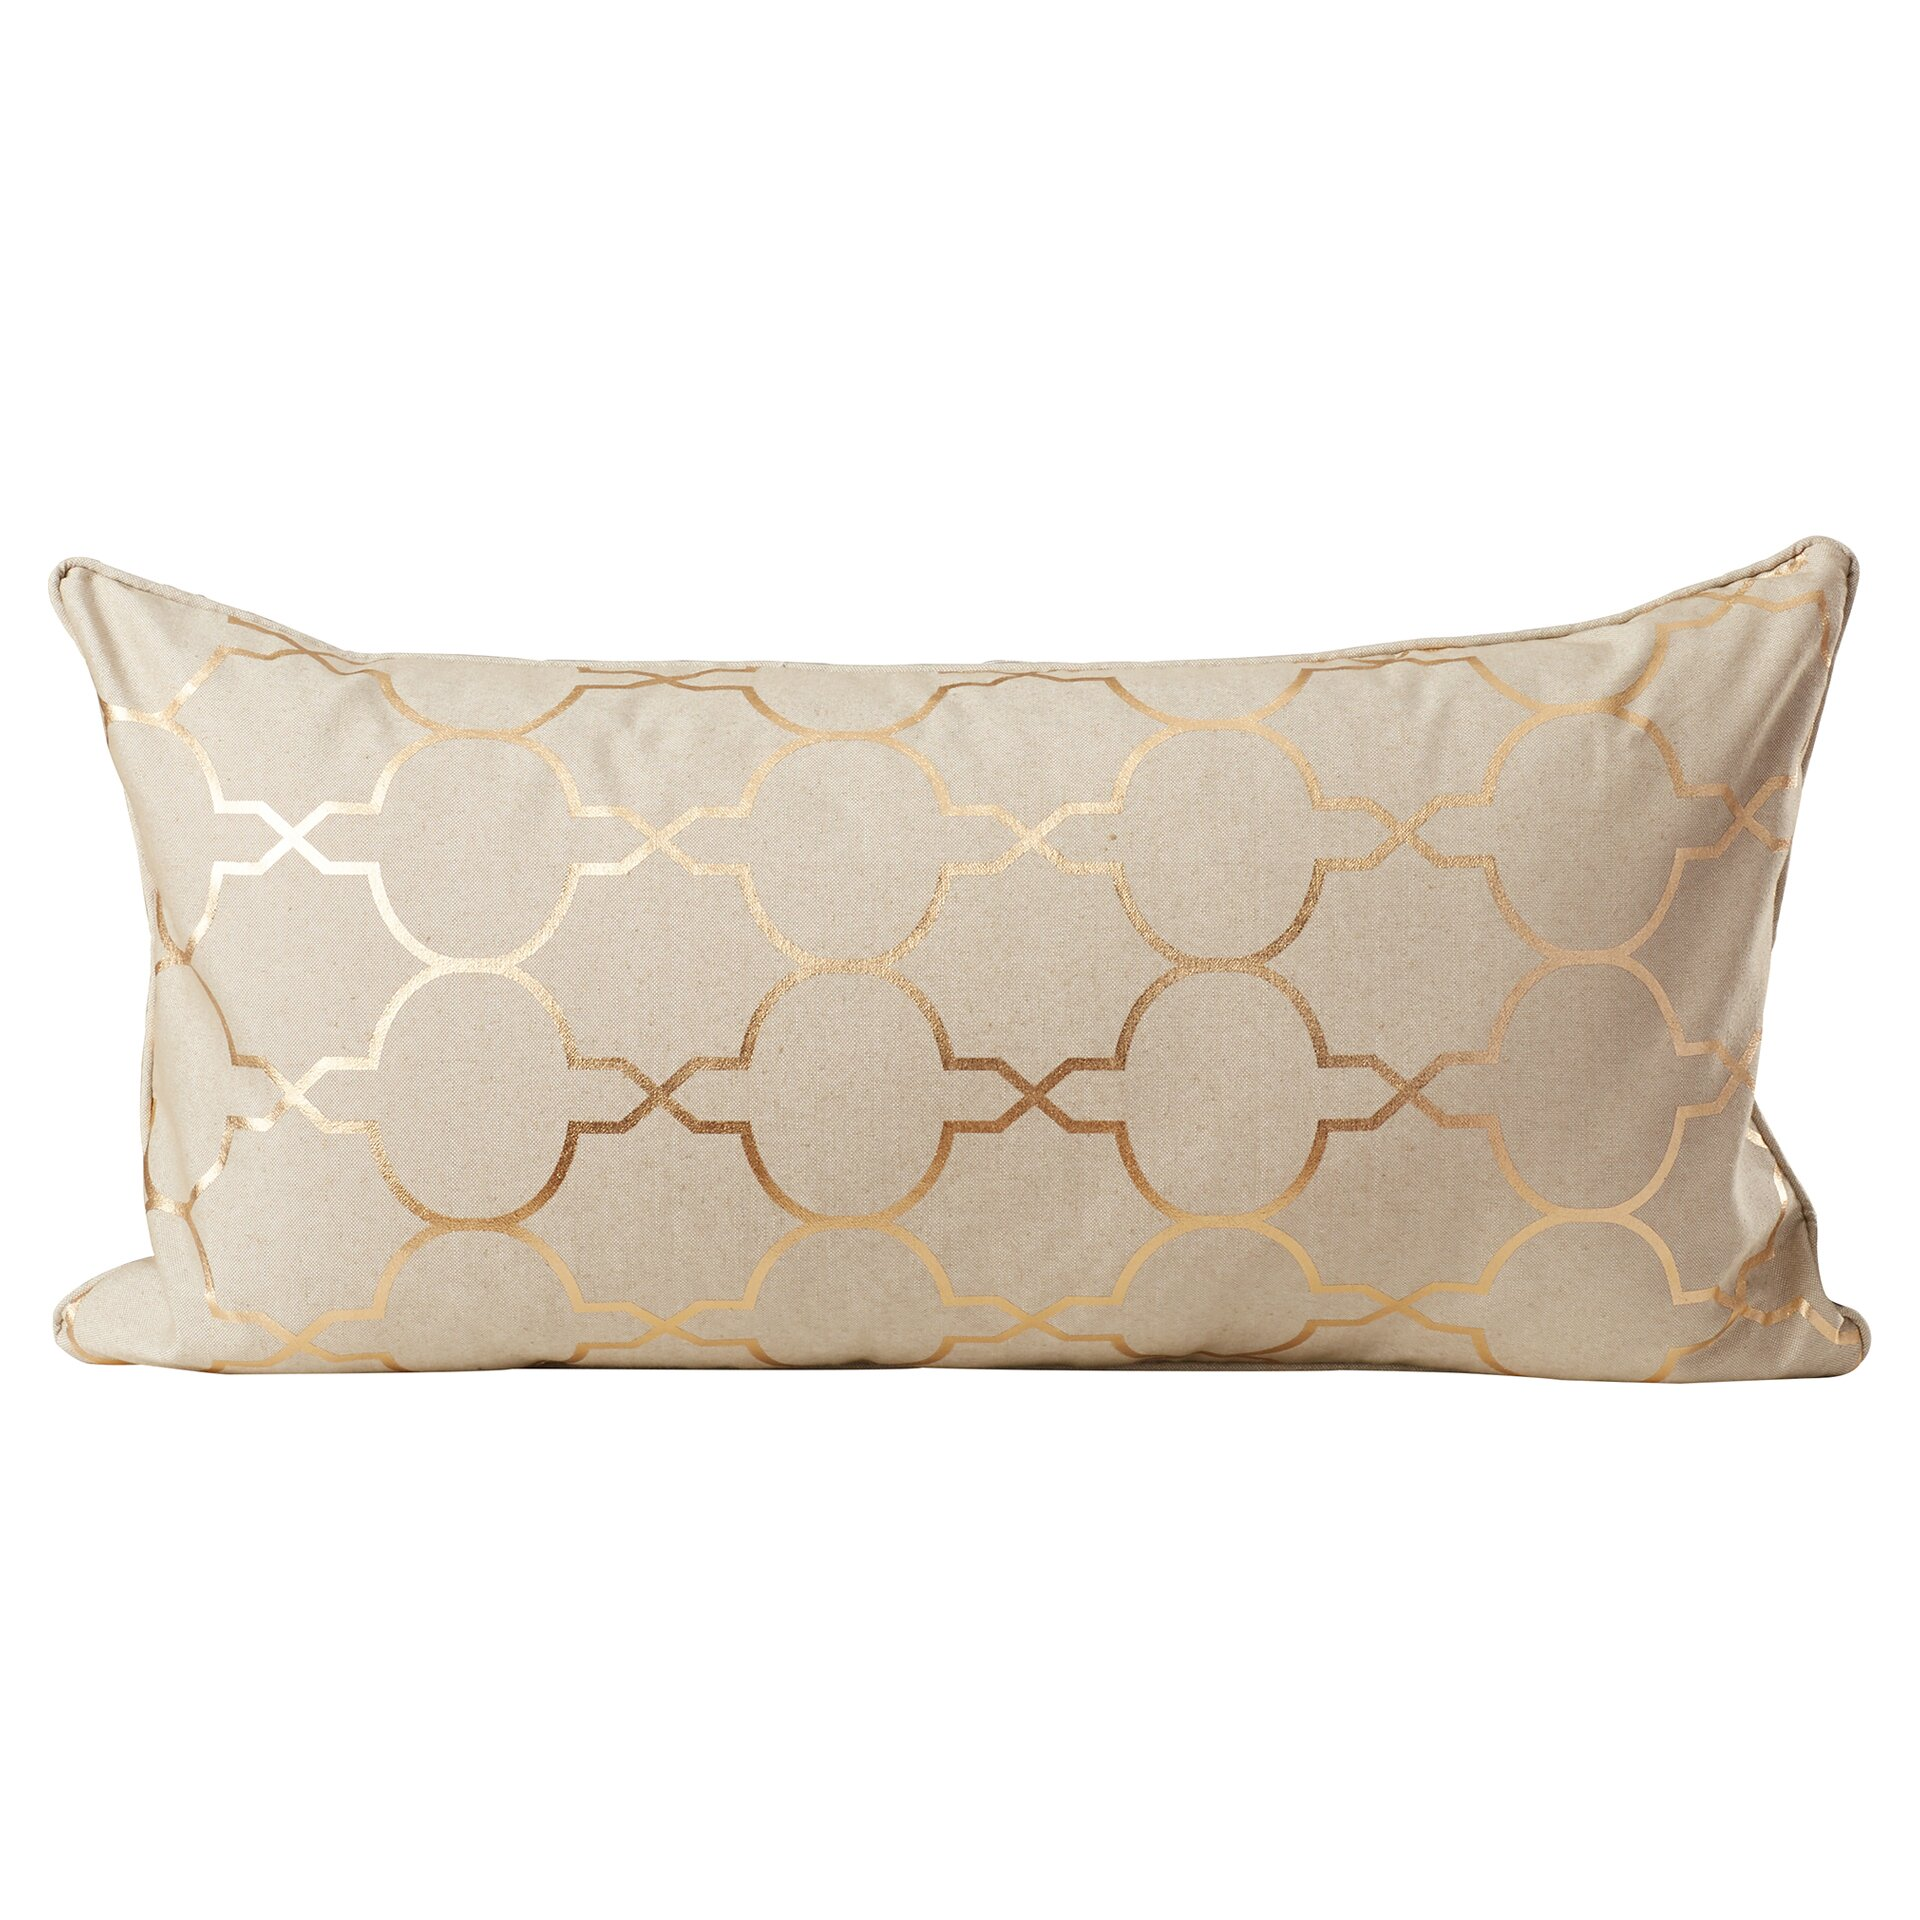 Throw Pillow Gallery : Varick Gallery Salisbury Foil Tile Throw Pillow & Reviews Wayfair.ca